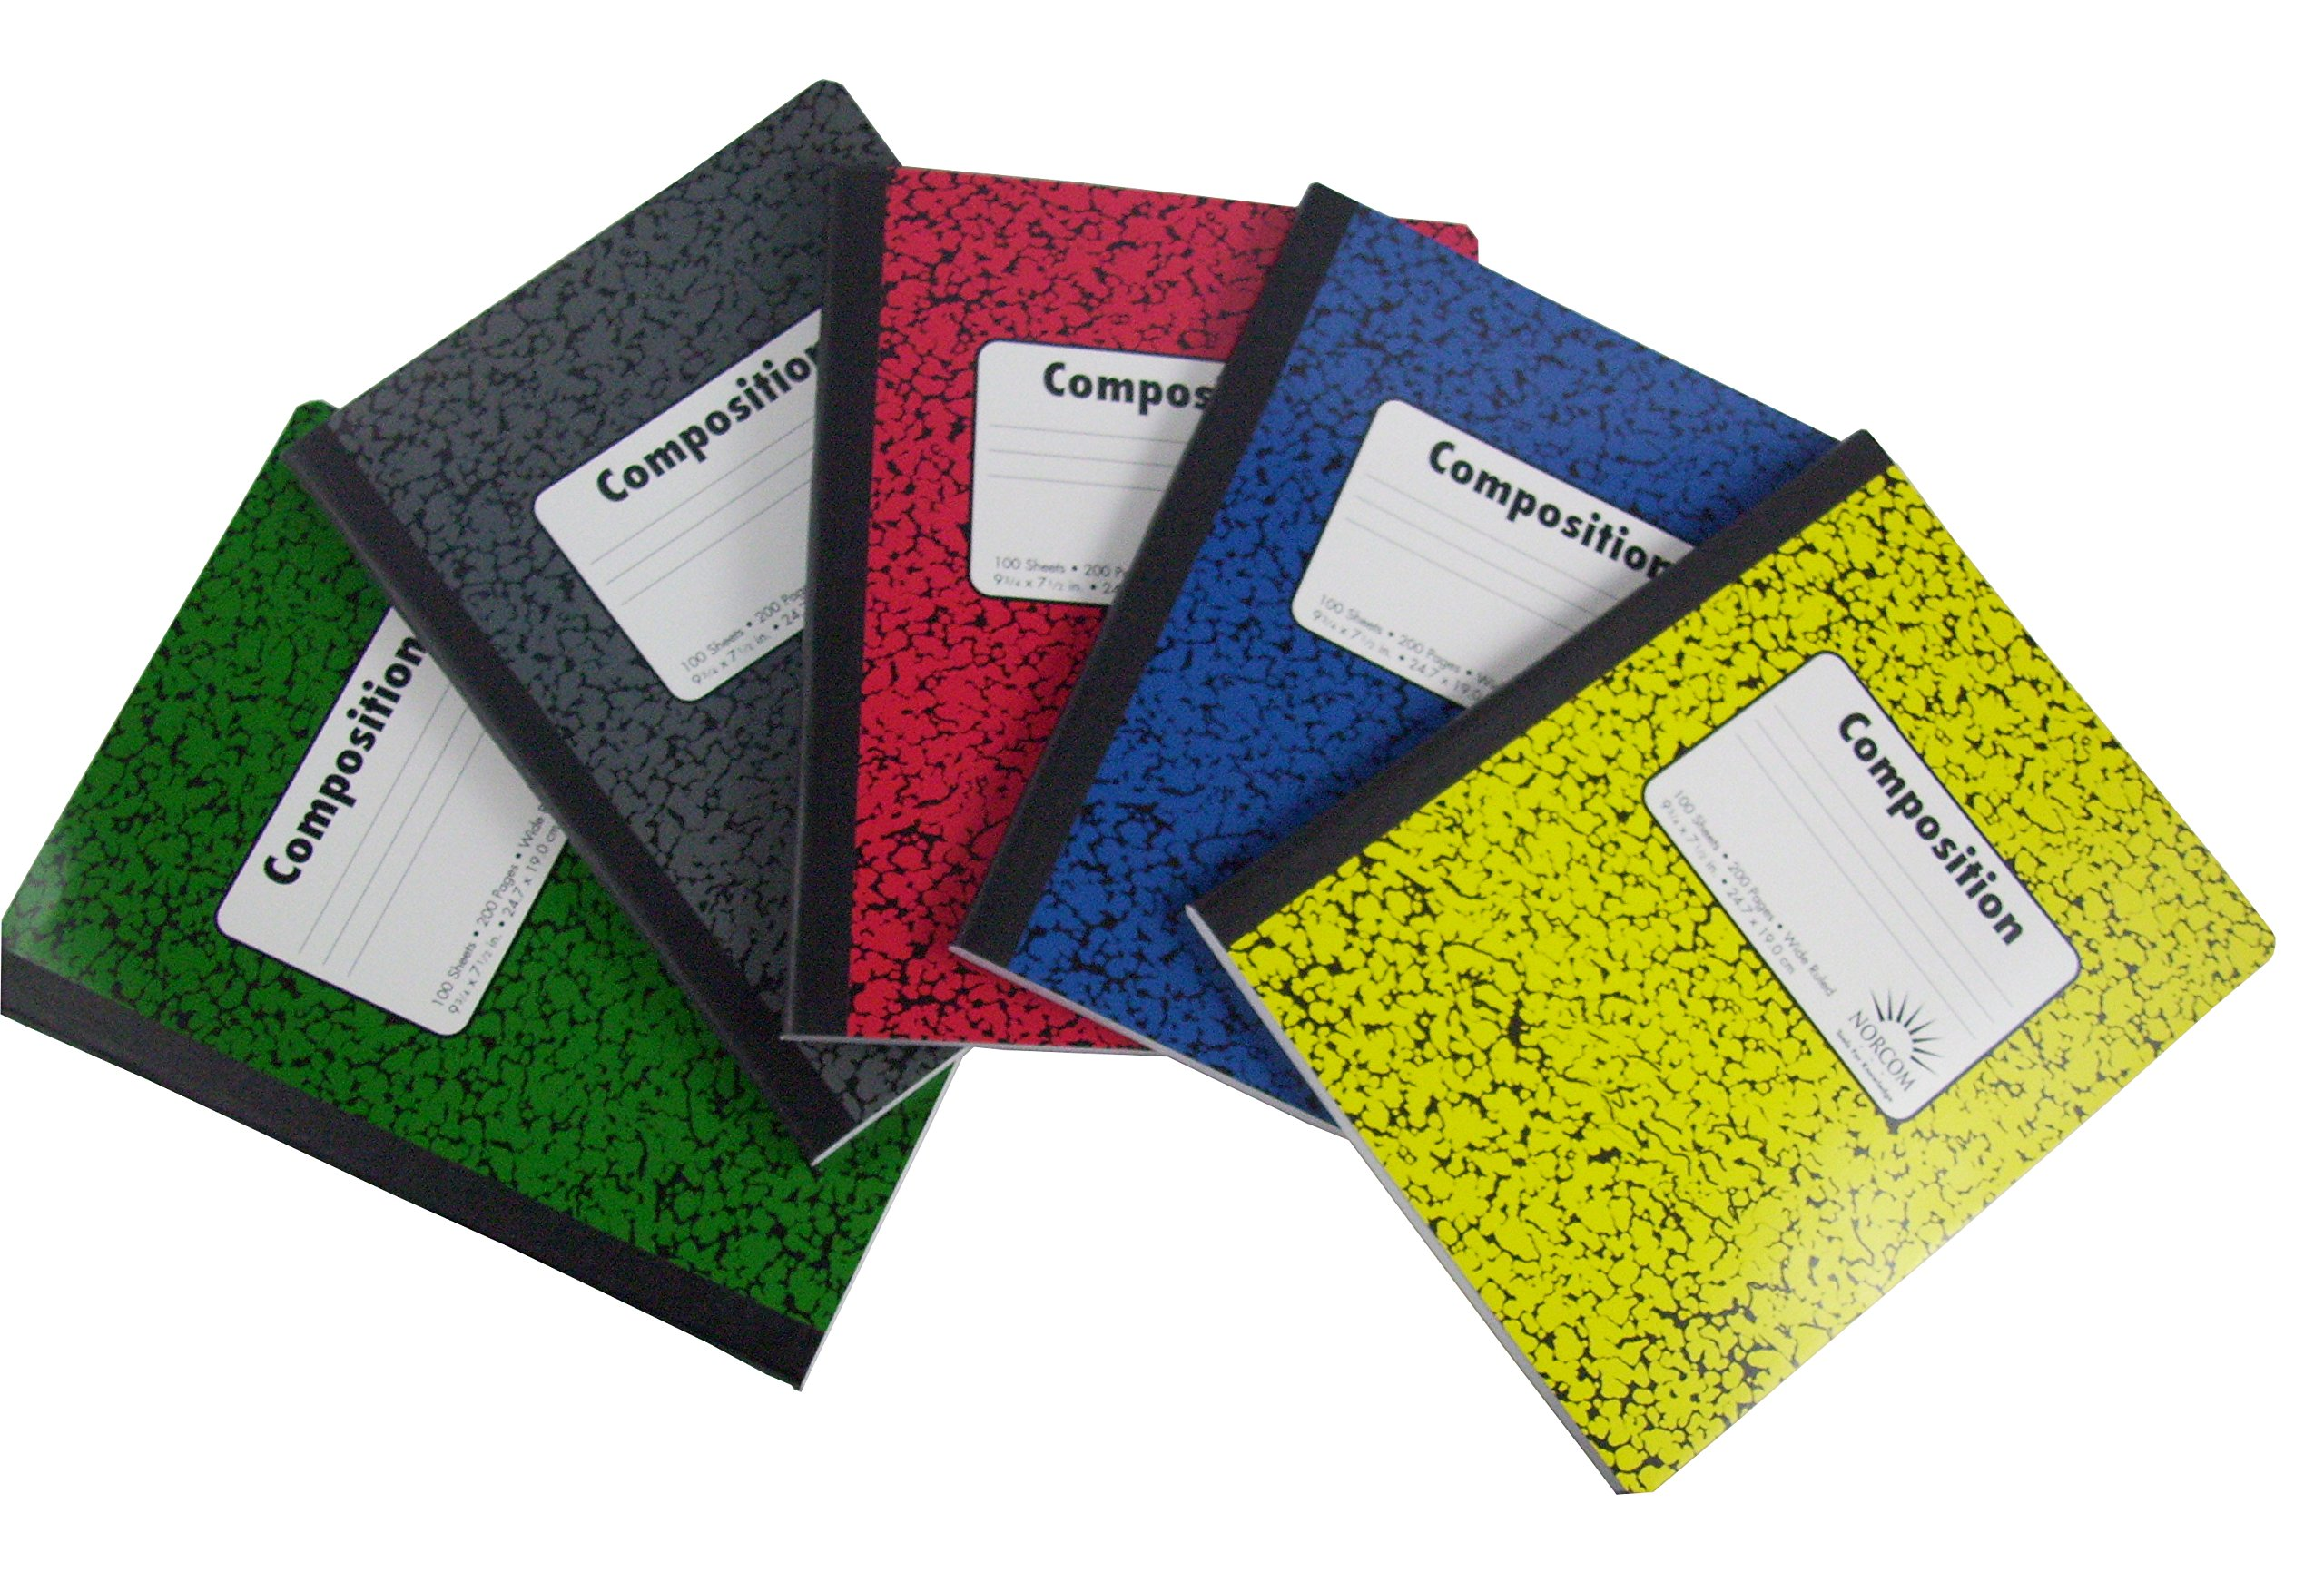 Norcom Wide Ruled 100 Sheets Composition Notebooks 5-Pack - Green, Red, Yellow and Blue, Black/Gray (Variety)